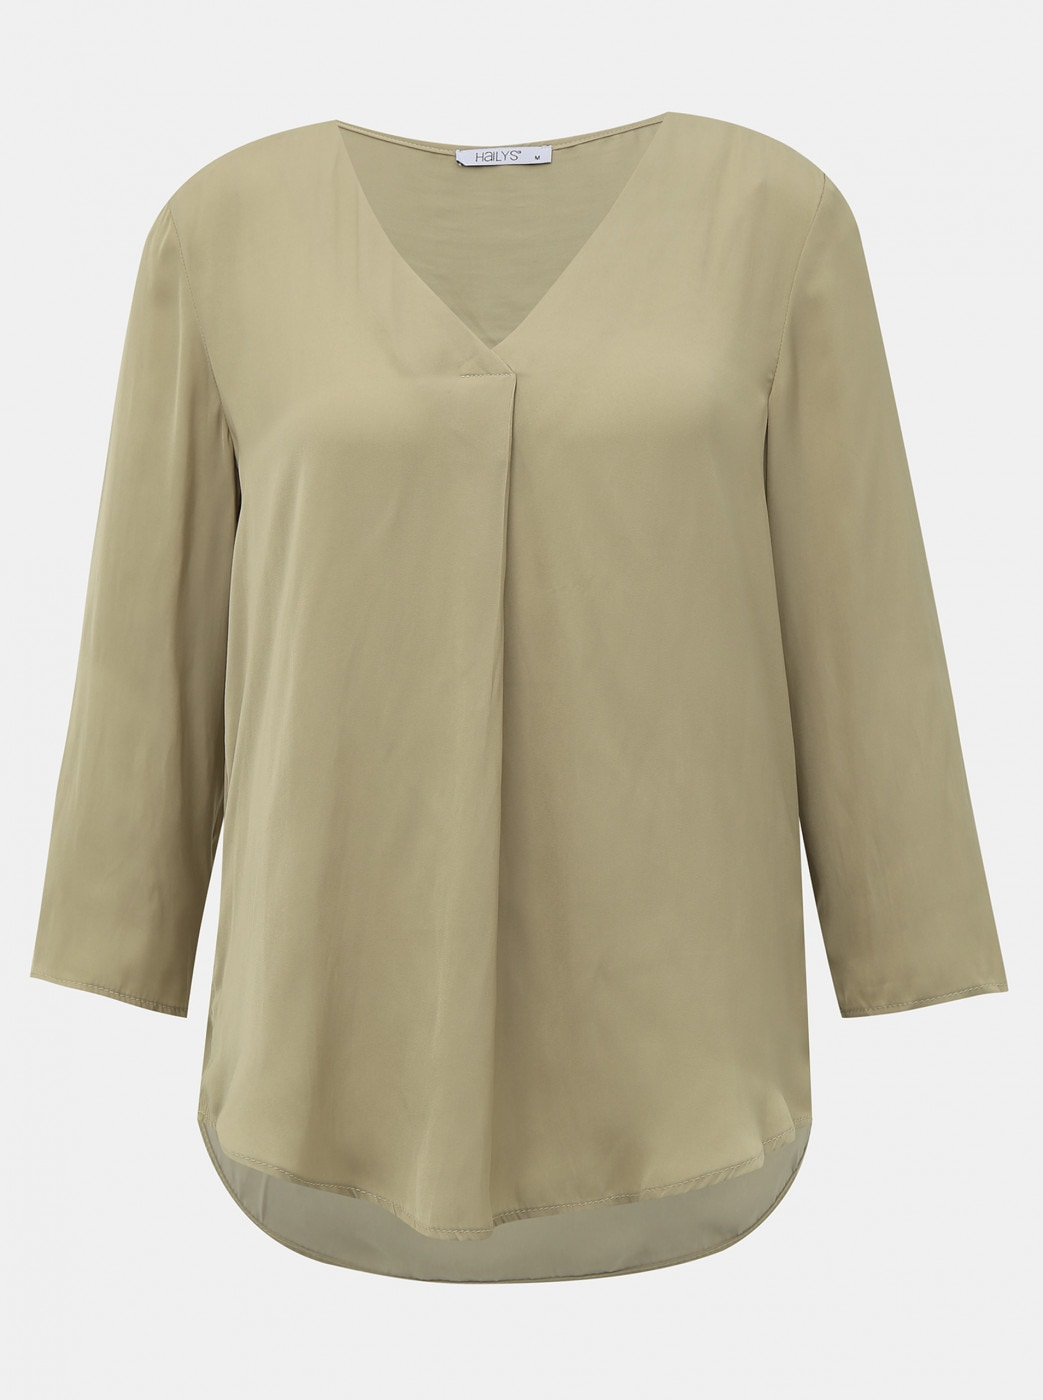 Beige Blouse Haily ́s Polly